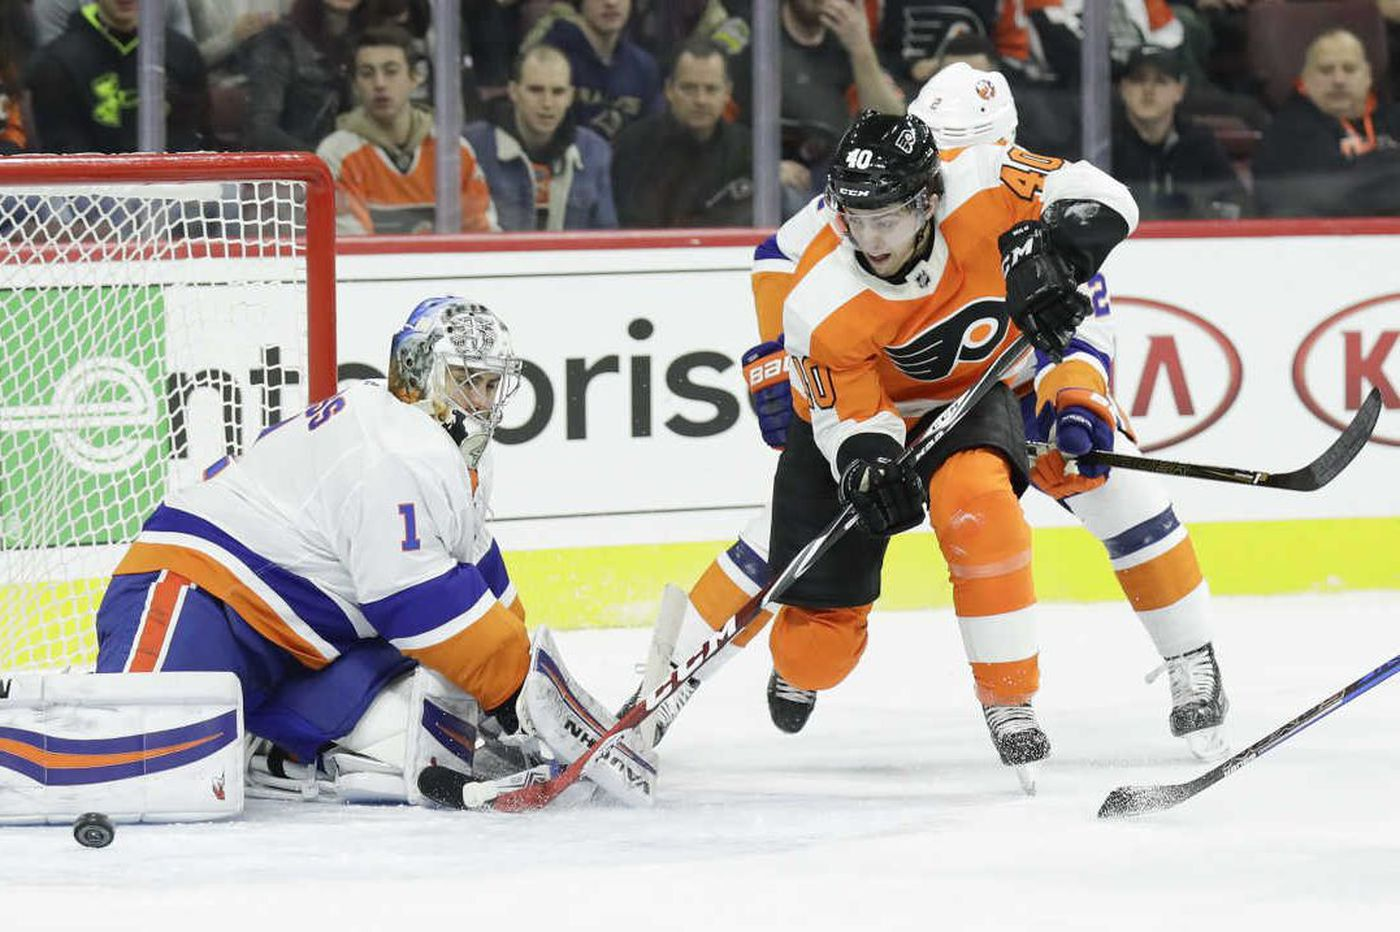 Flyers coach Dave Hakstol considering changes to boost production for Game 4 against Penguins